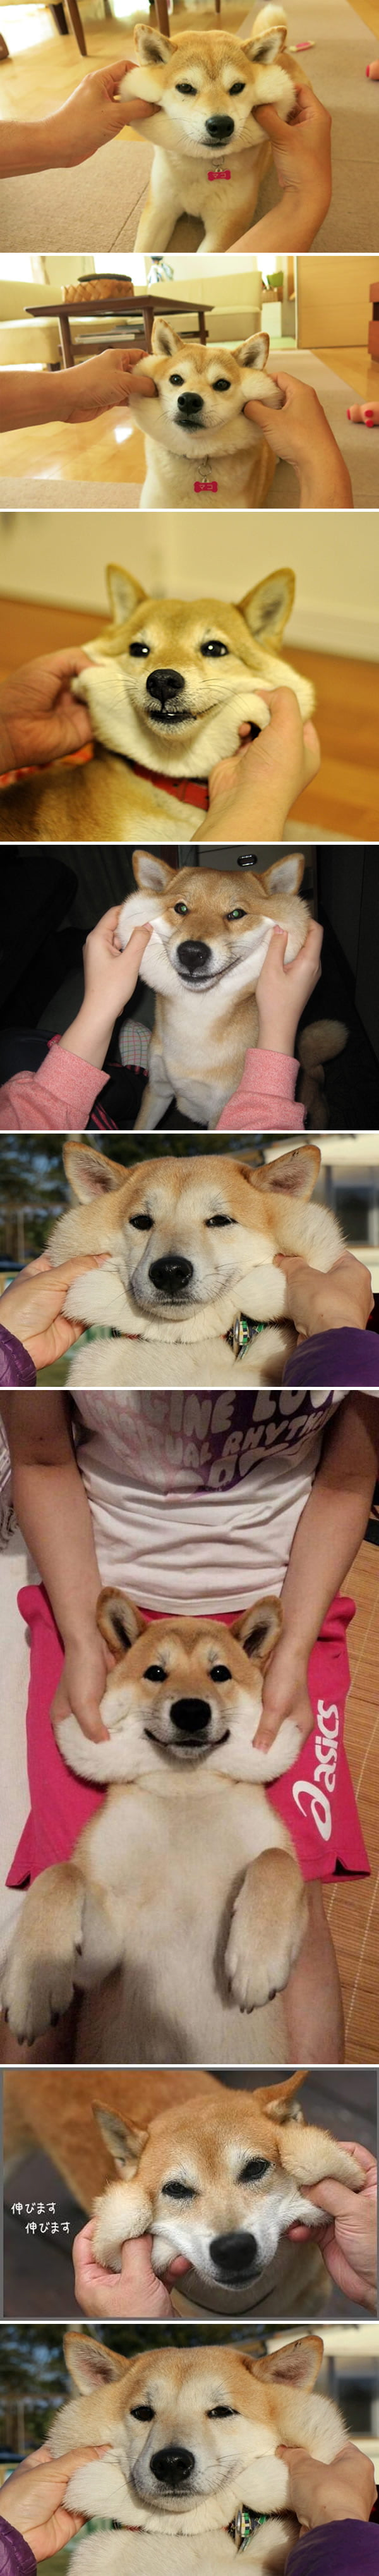 Forget hamsters, doges have the chubbiest cheeks of all!